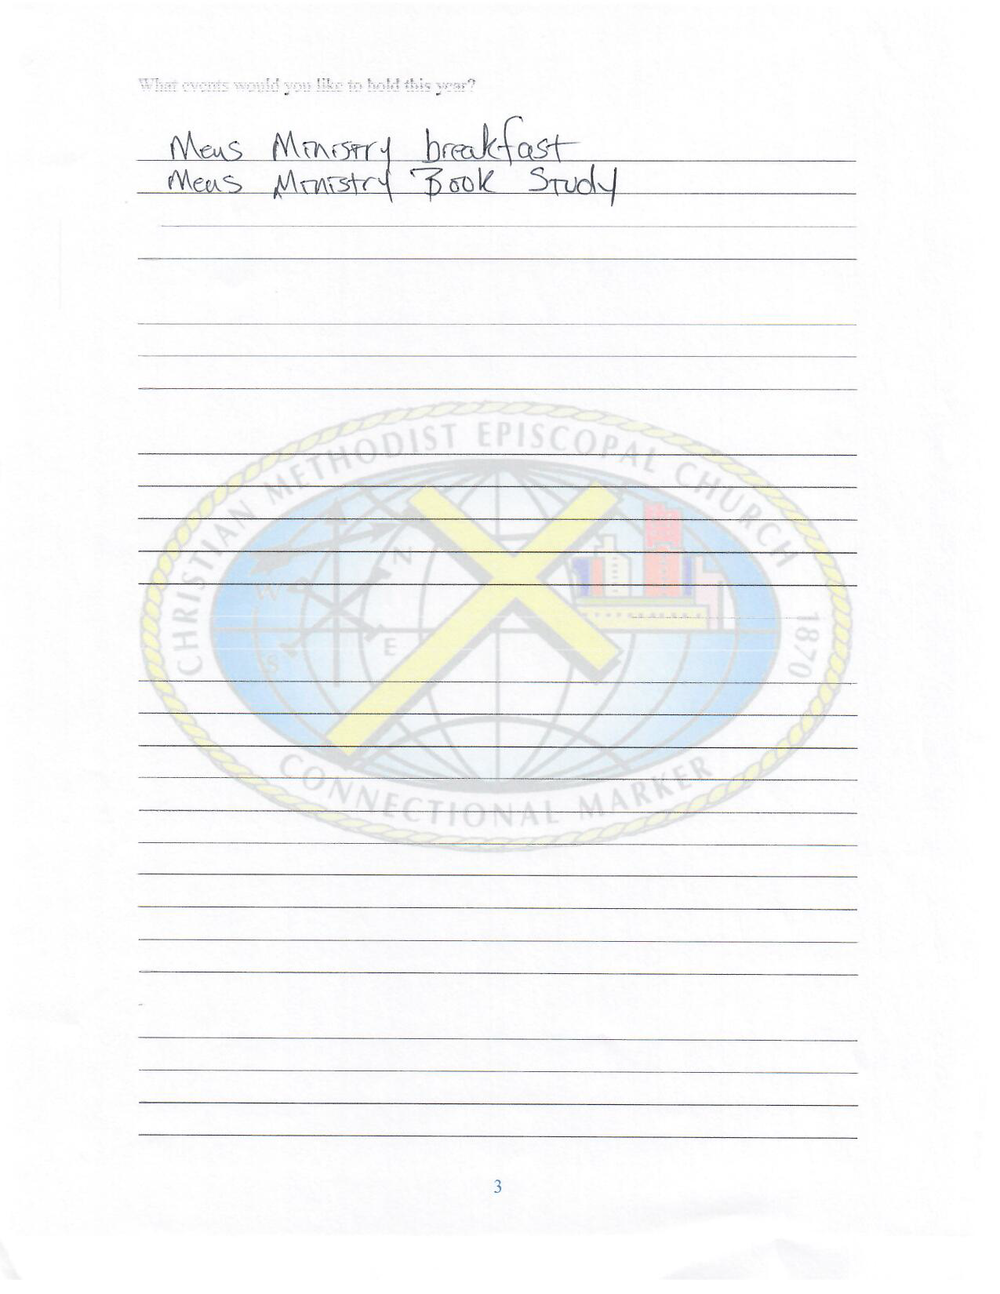 Kitchen Steward Planning Report_Page_3.png